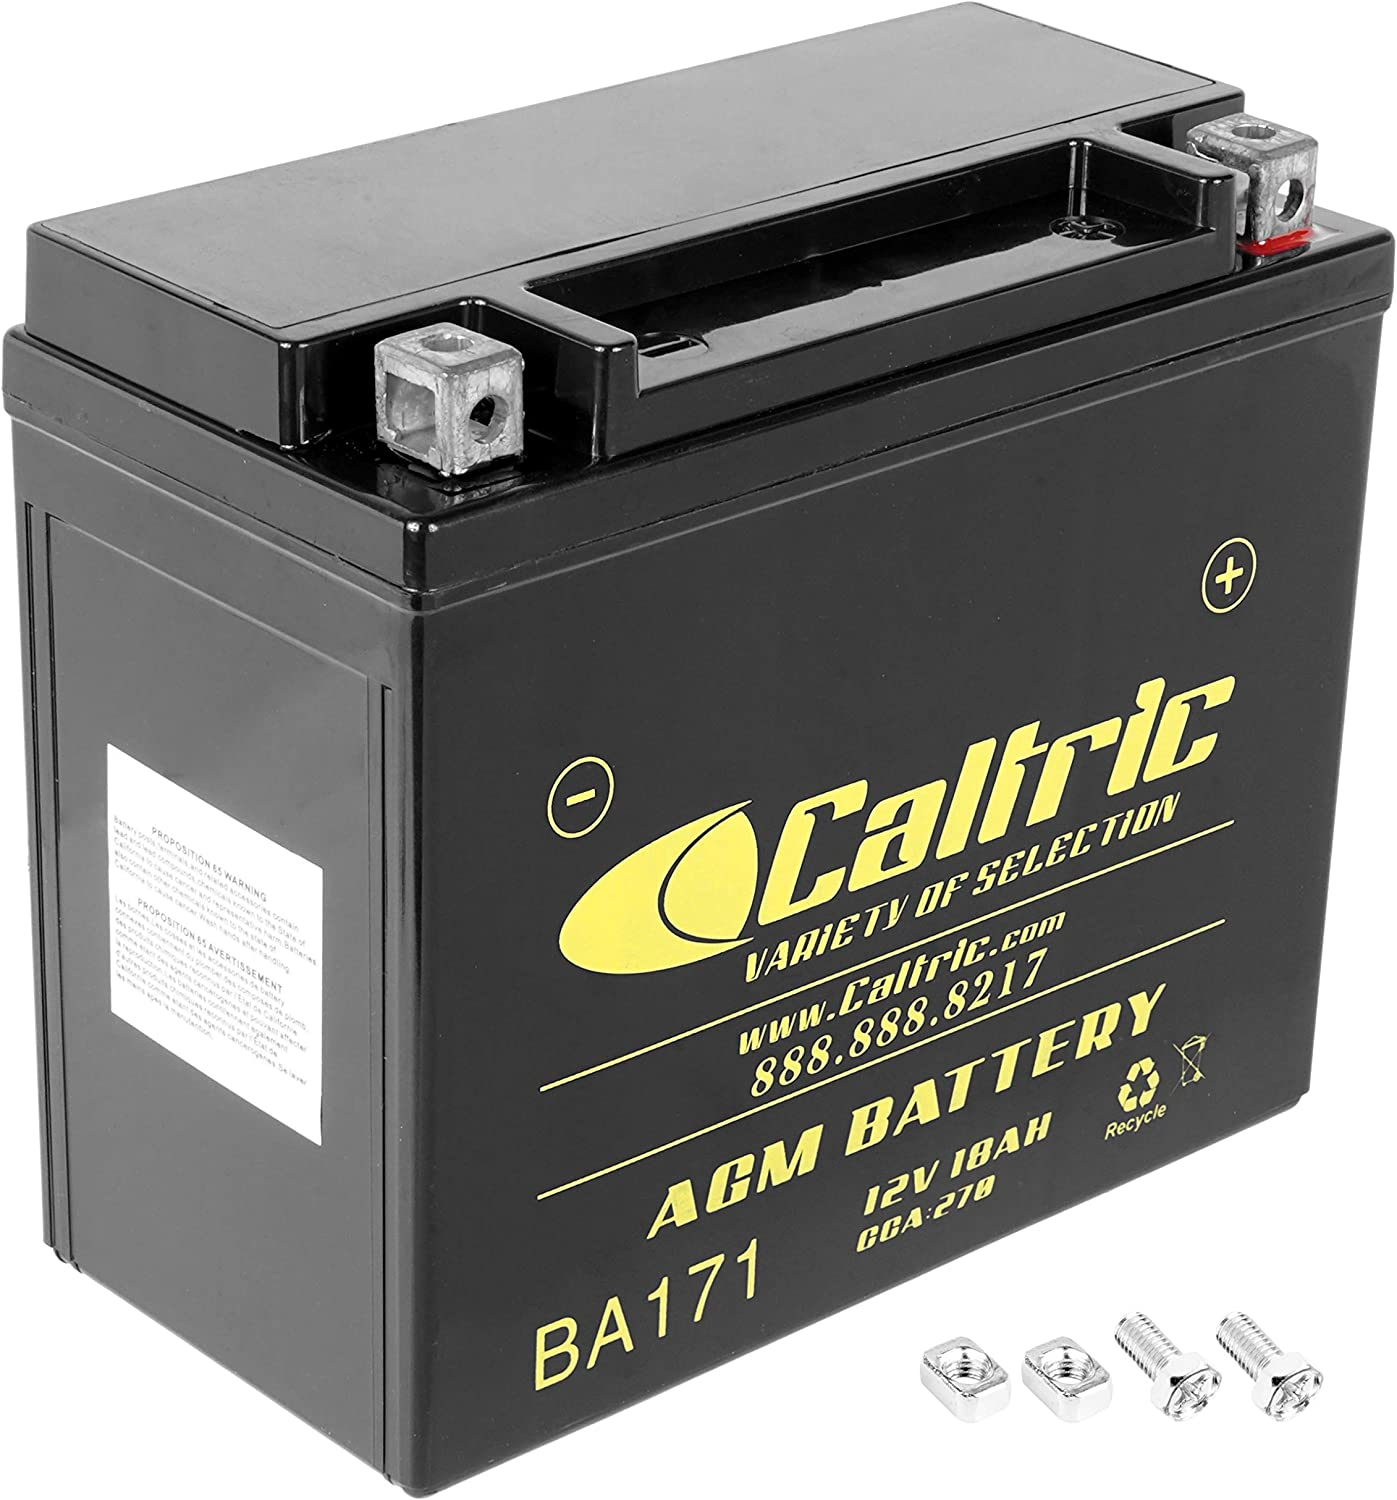 Caltric compatible with Agm Battery Yamaha Grizzly 600 Yfm600F Yfm-600F 4Wd 1998-2001